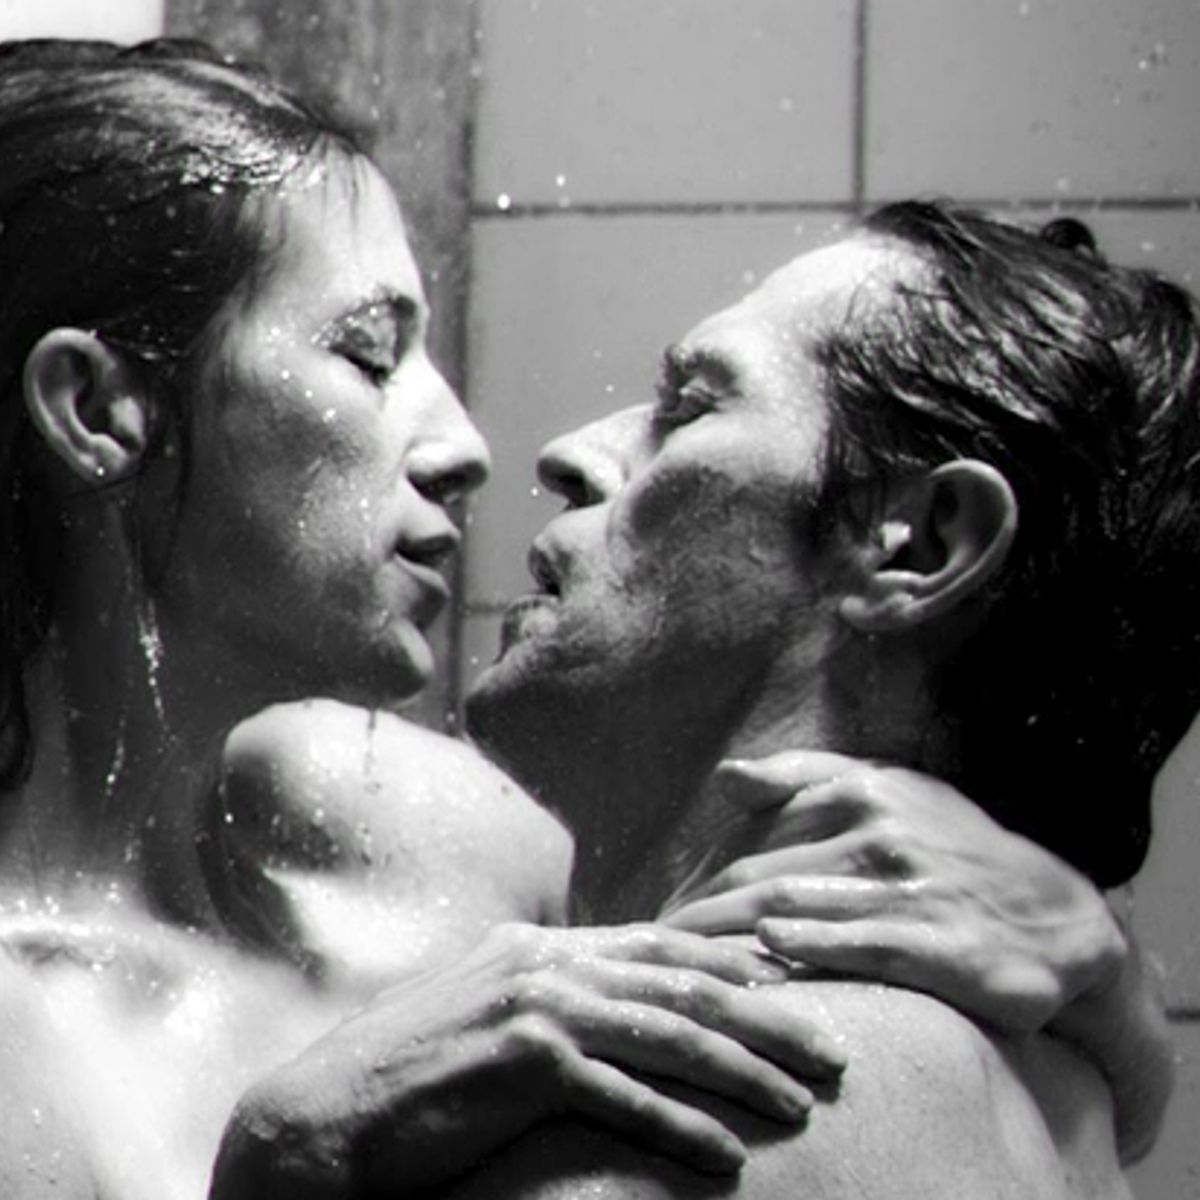 Antichrist Porn the golden age of sexual taboos: how indie movies brought